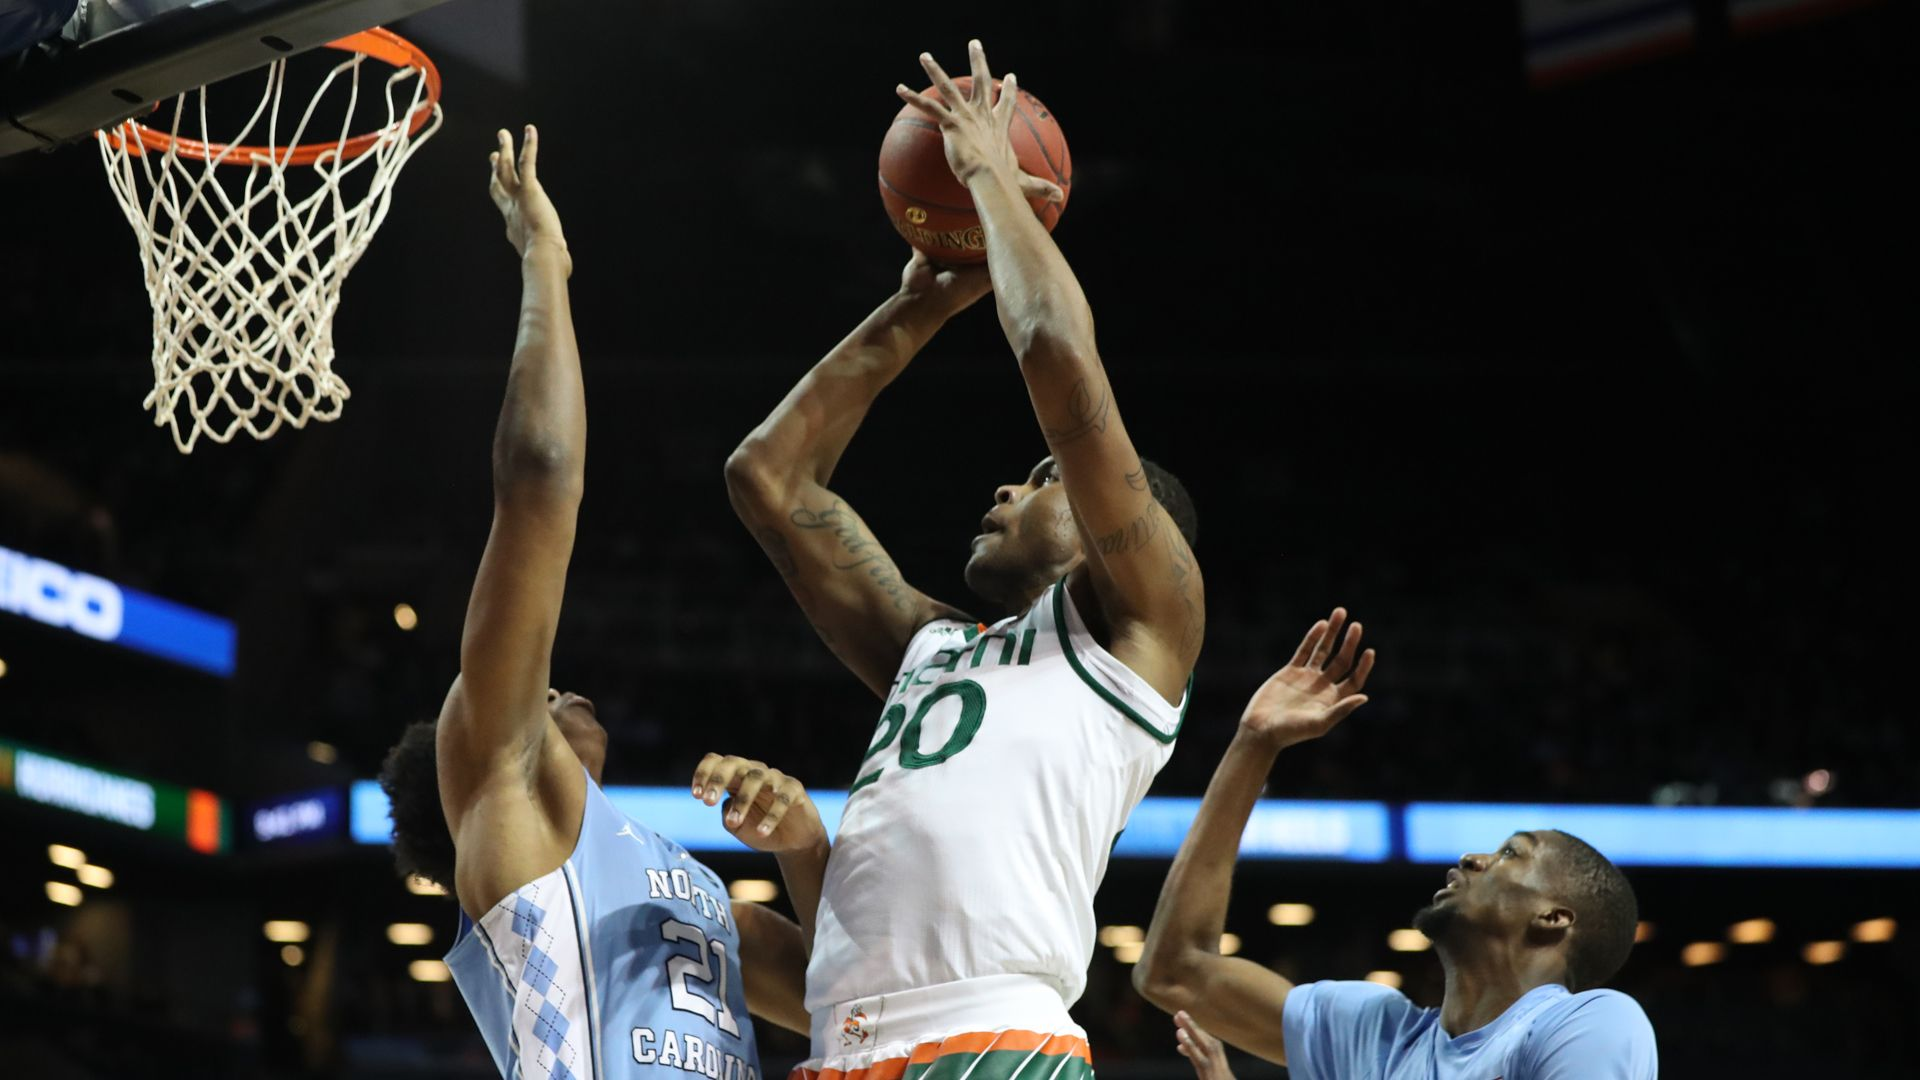 Canes Fall to UNC, 82-65, in ACC Tourney Quarterfinal